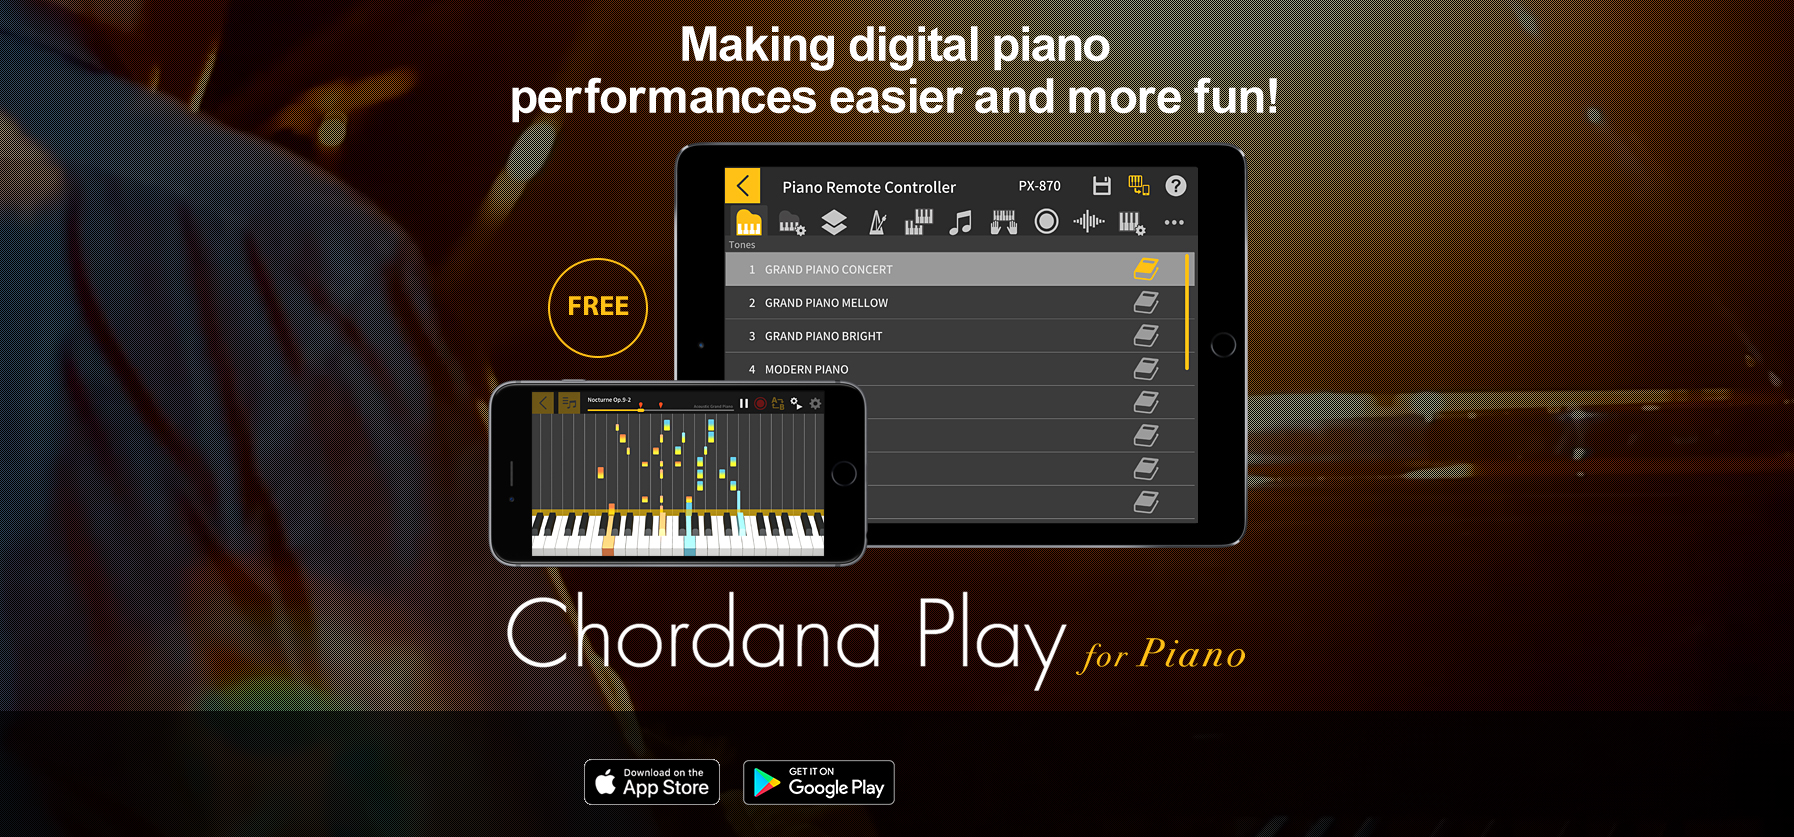 Chordana Play for Piano Supported